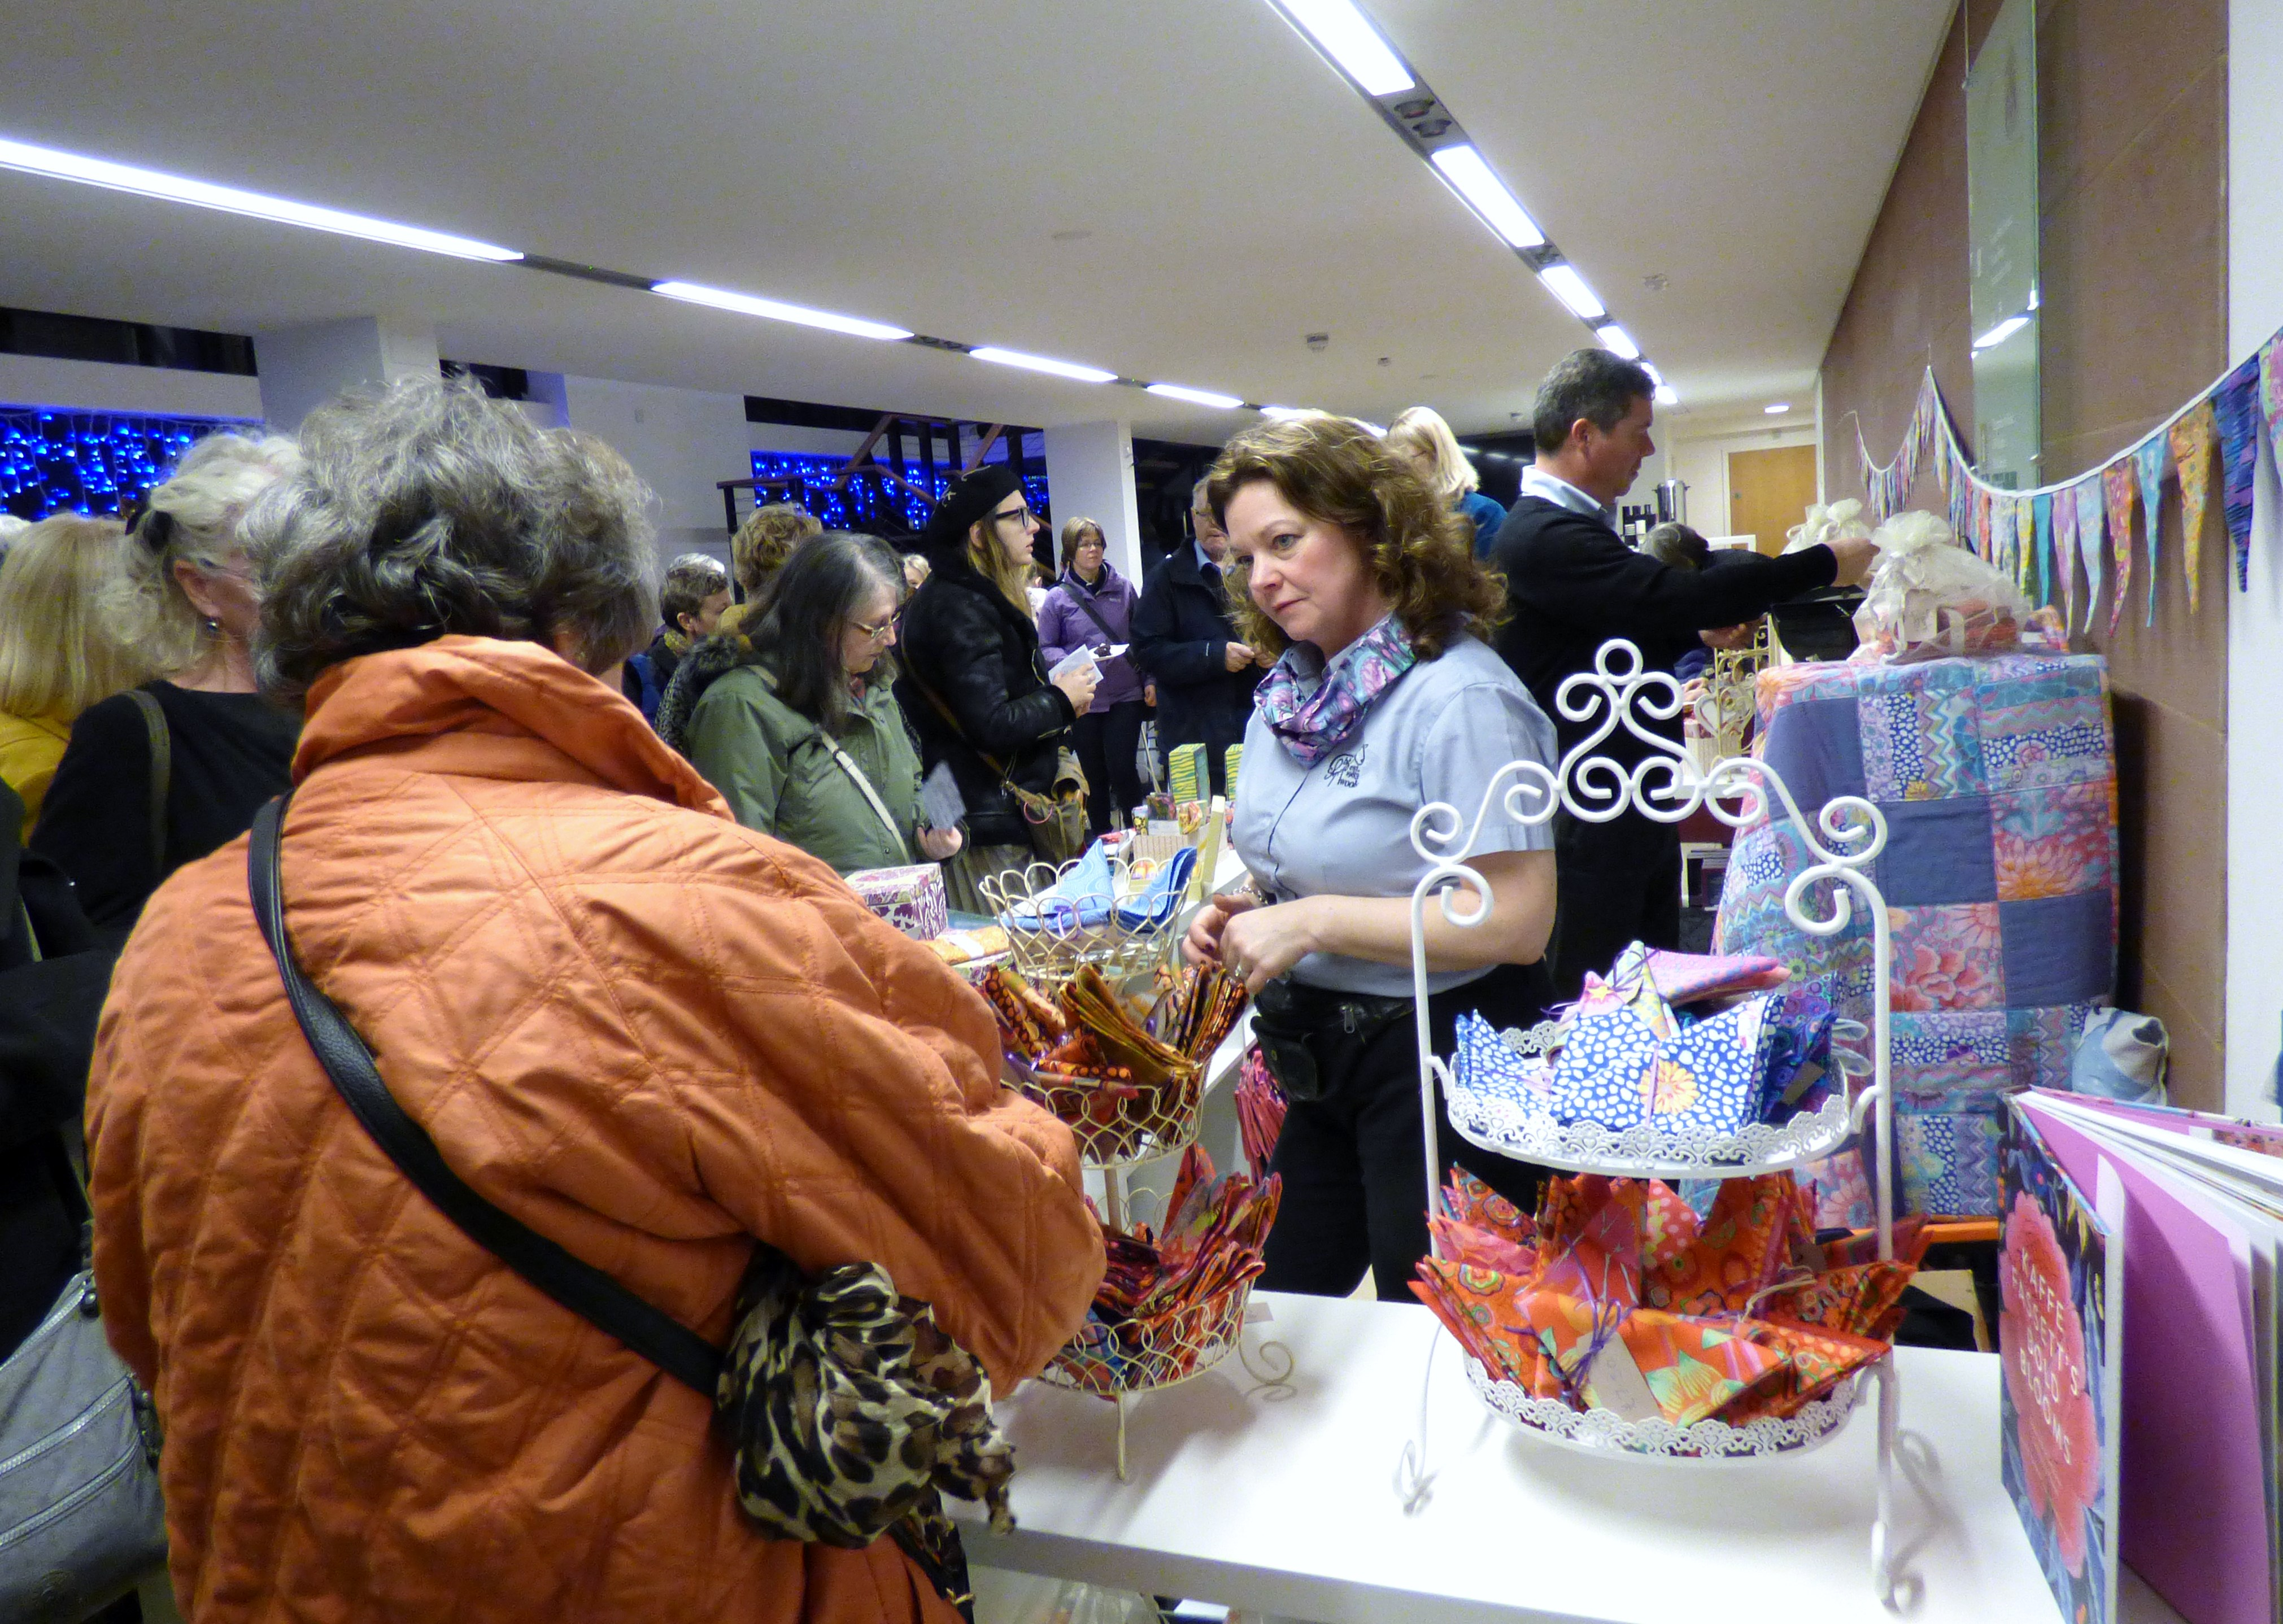 lots of shopping opportunities before the event at Kaffe Fassett Lecture, Capstone Theatre, Dec 2016